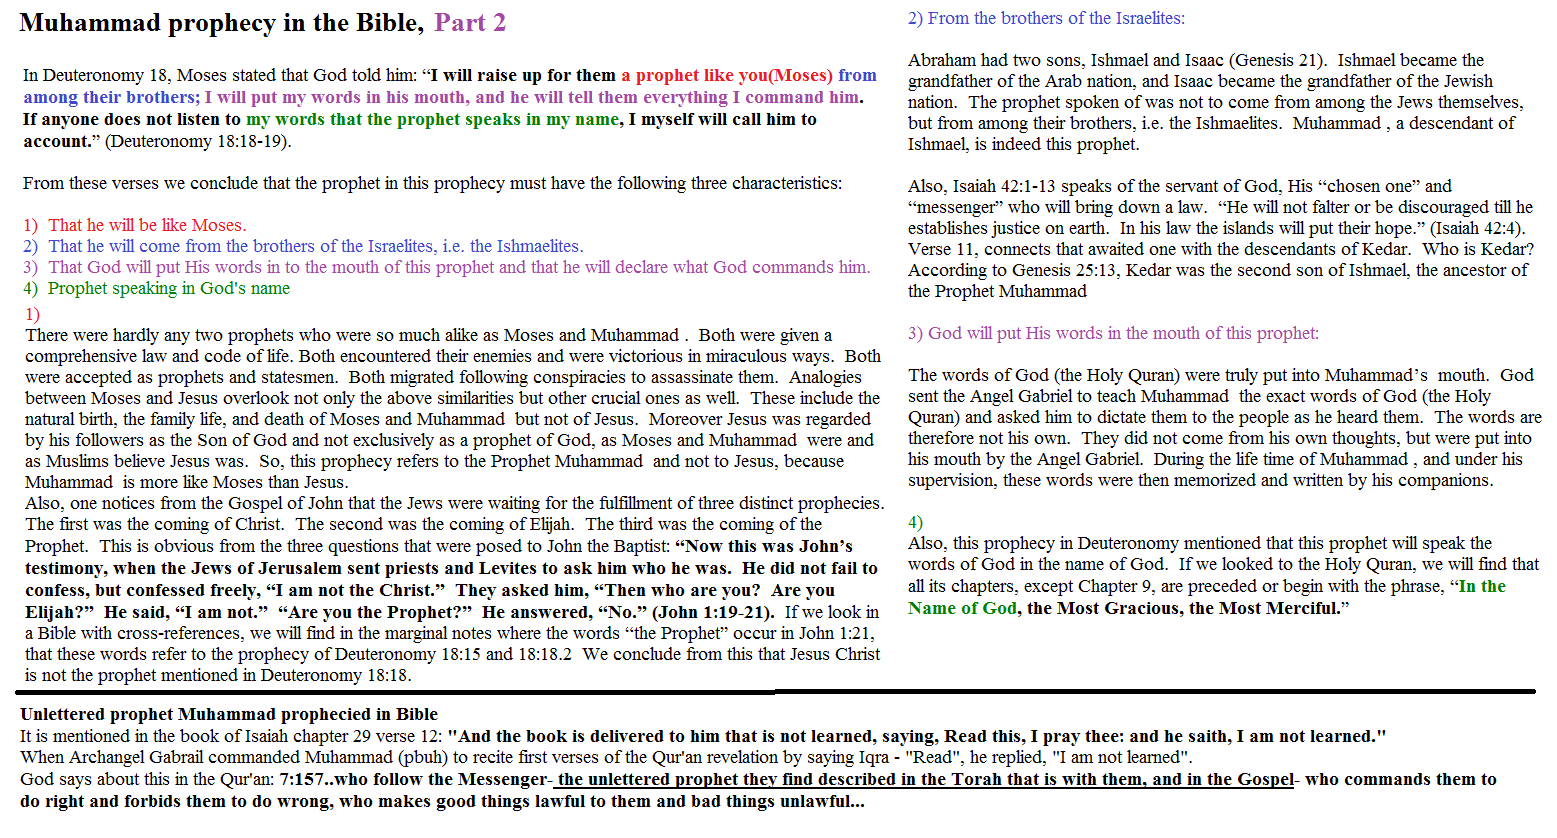 Muhammed/Ahmed in Bible prophecy, illustrated